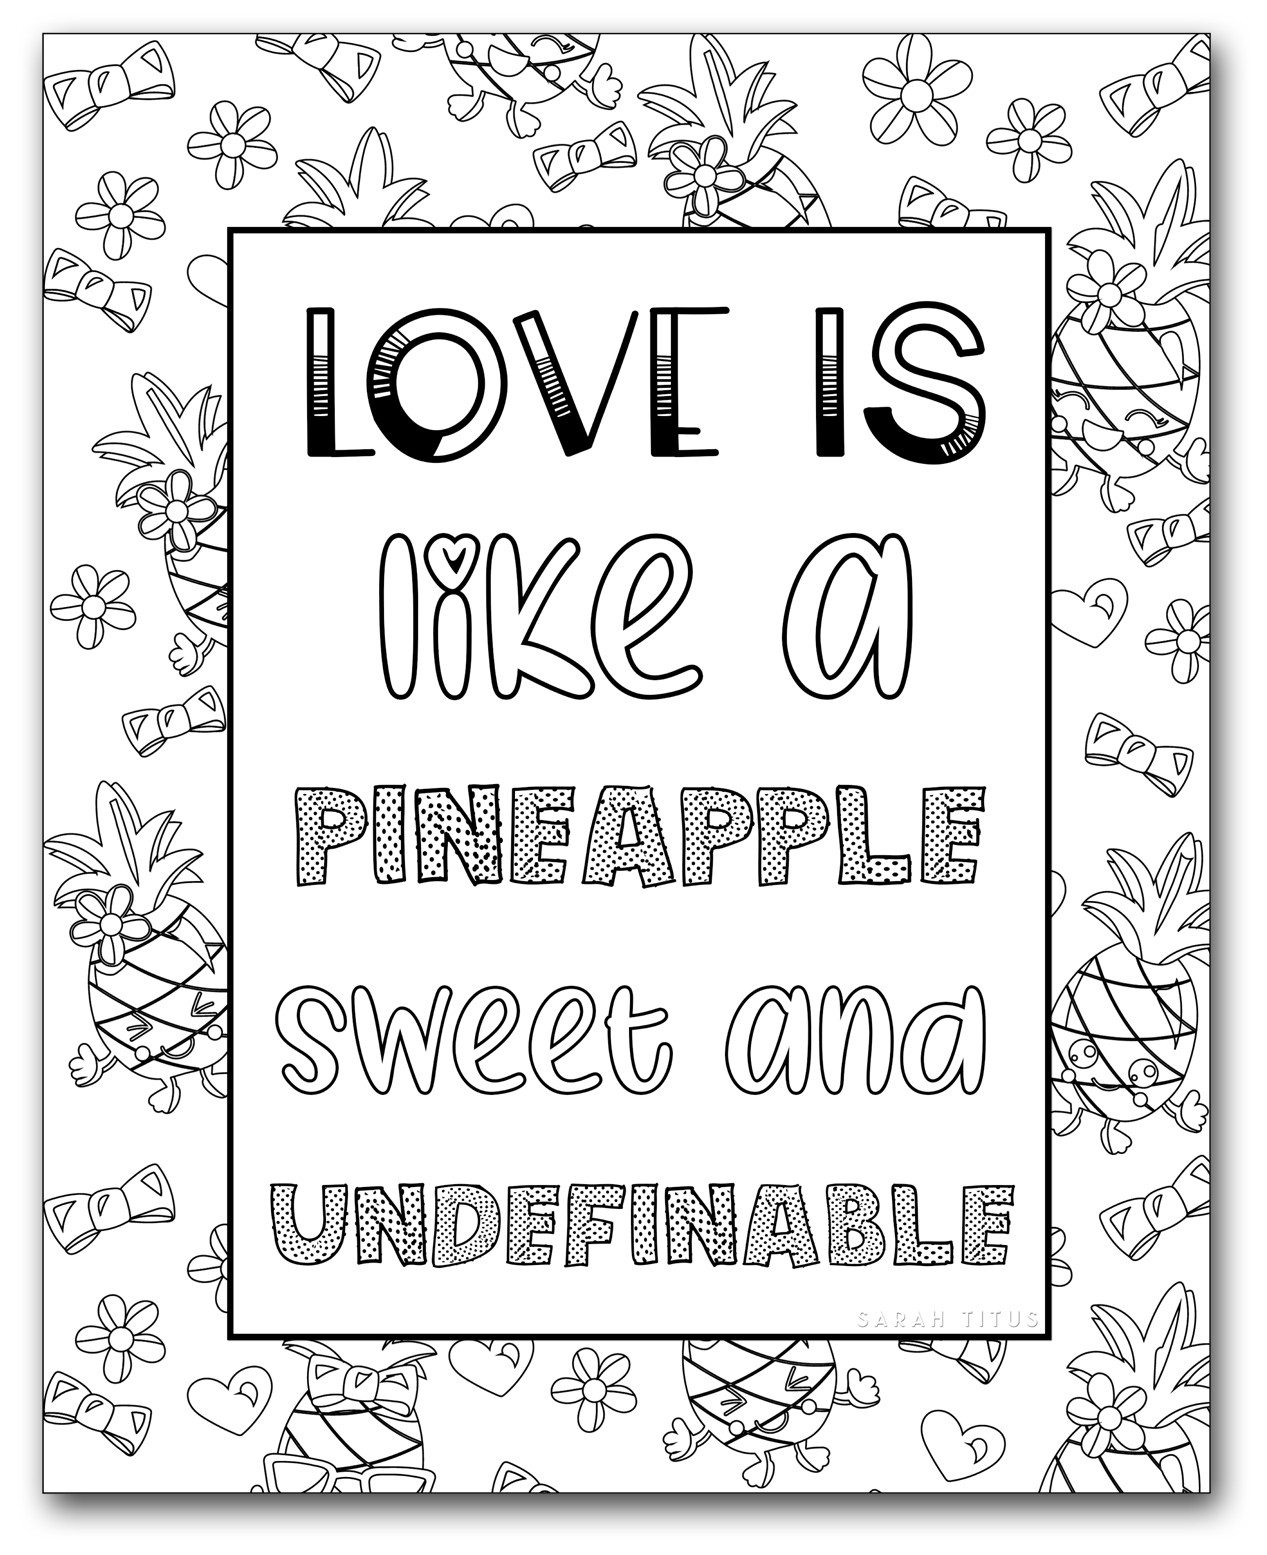 Printable Coloring Sheets For Girls  Printable Coloring Pages for Girls Sarah Titus